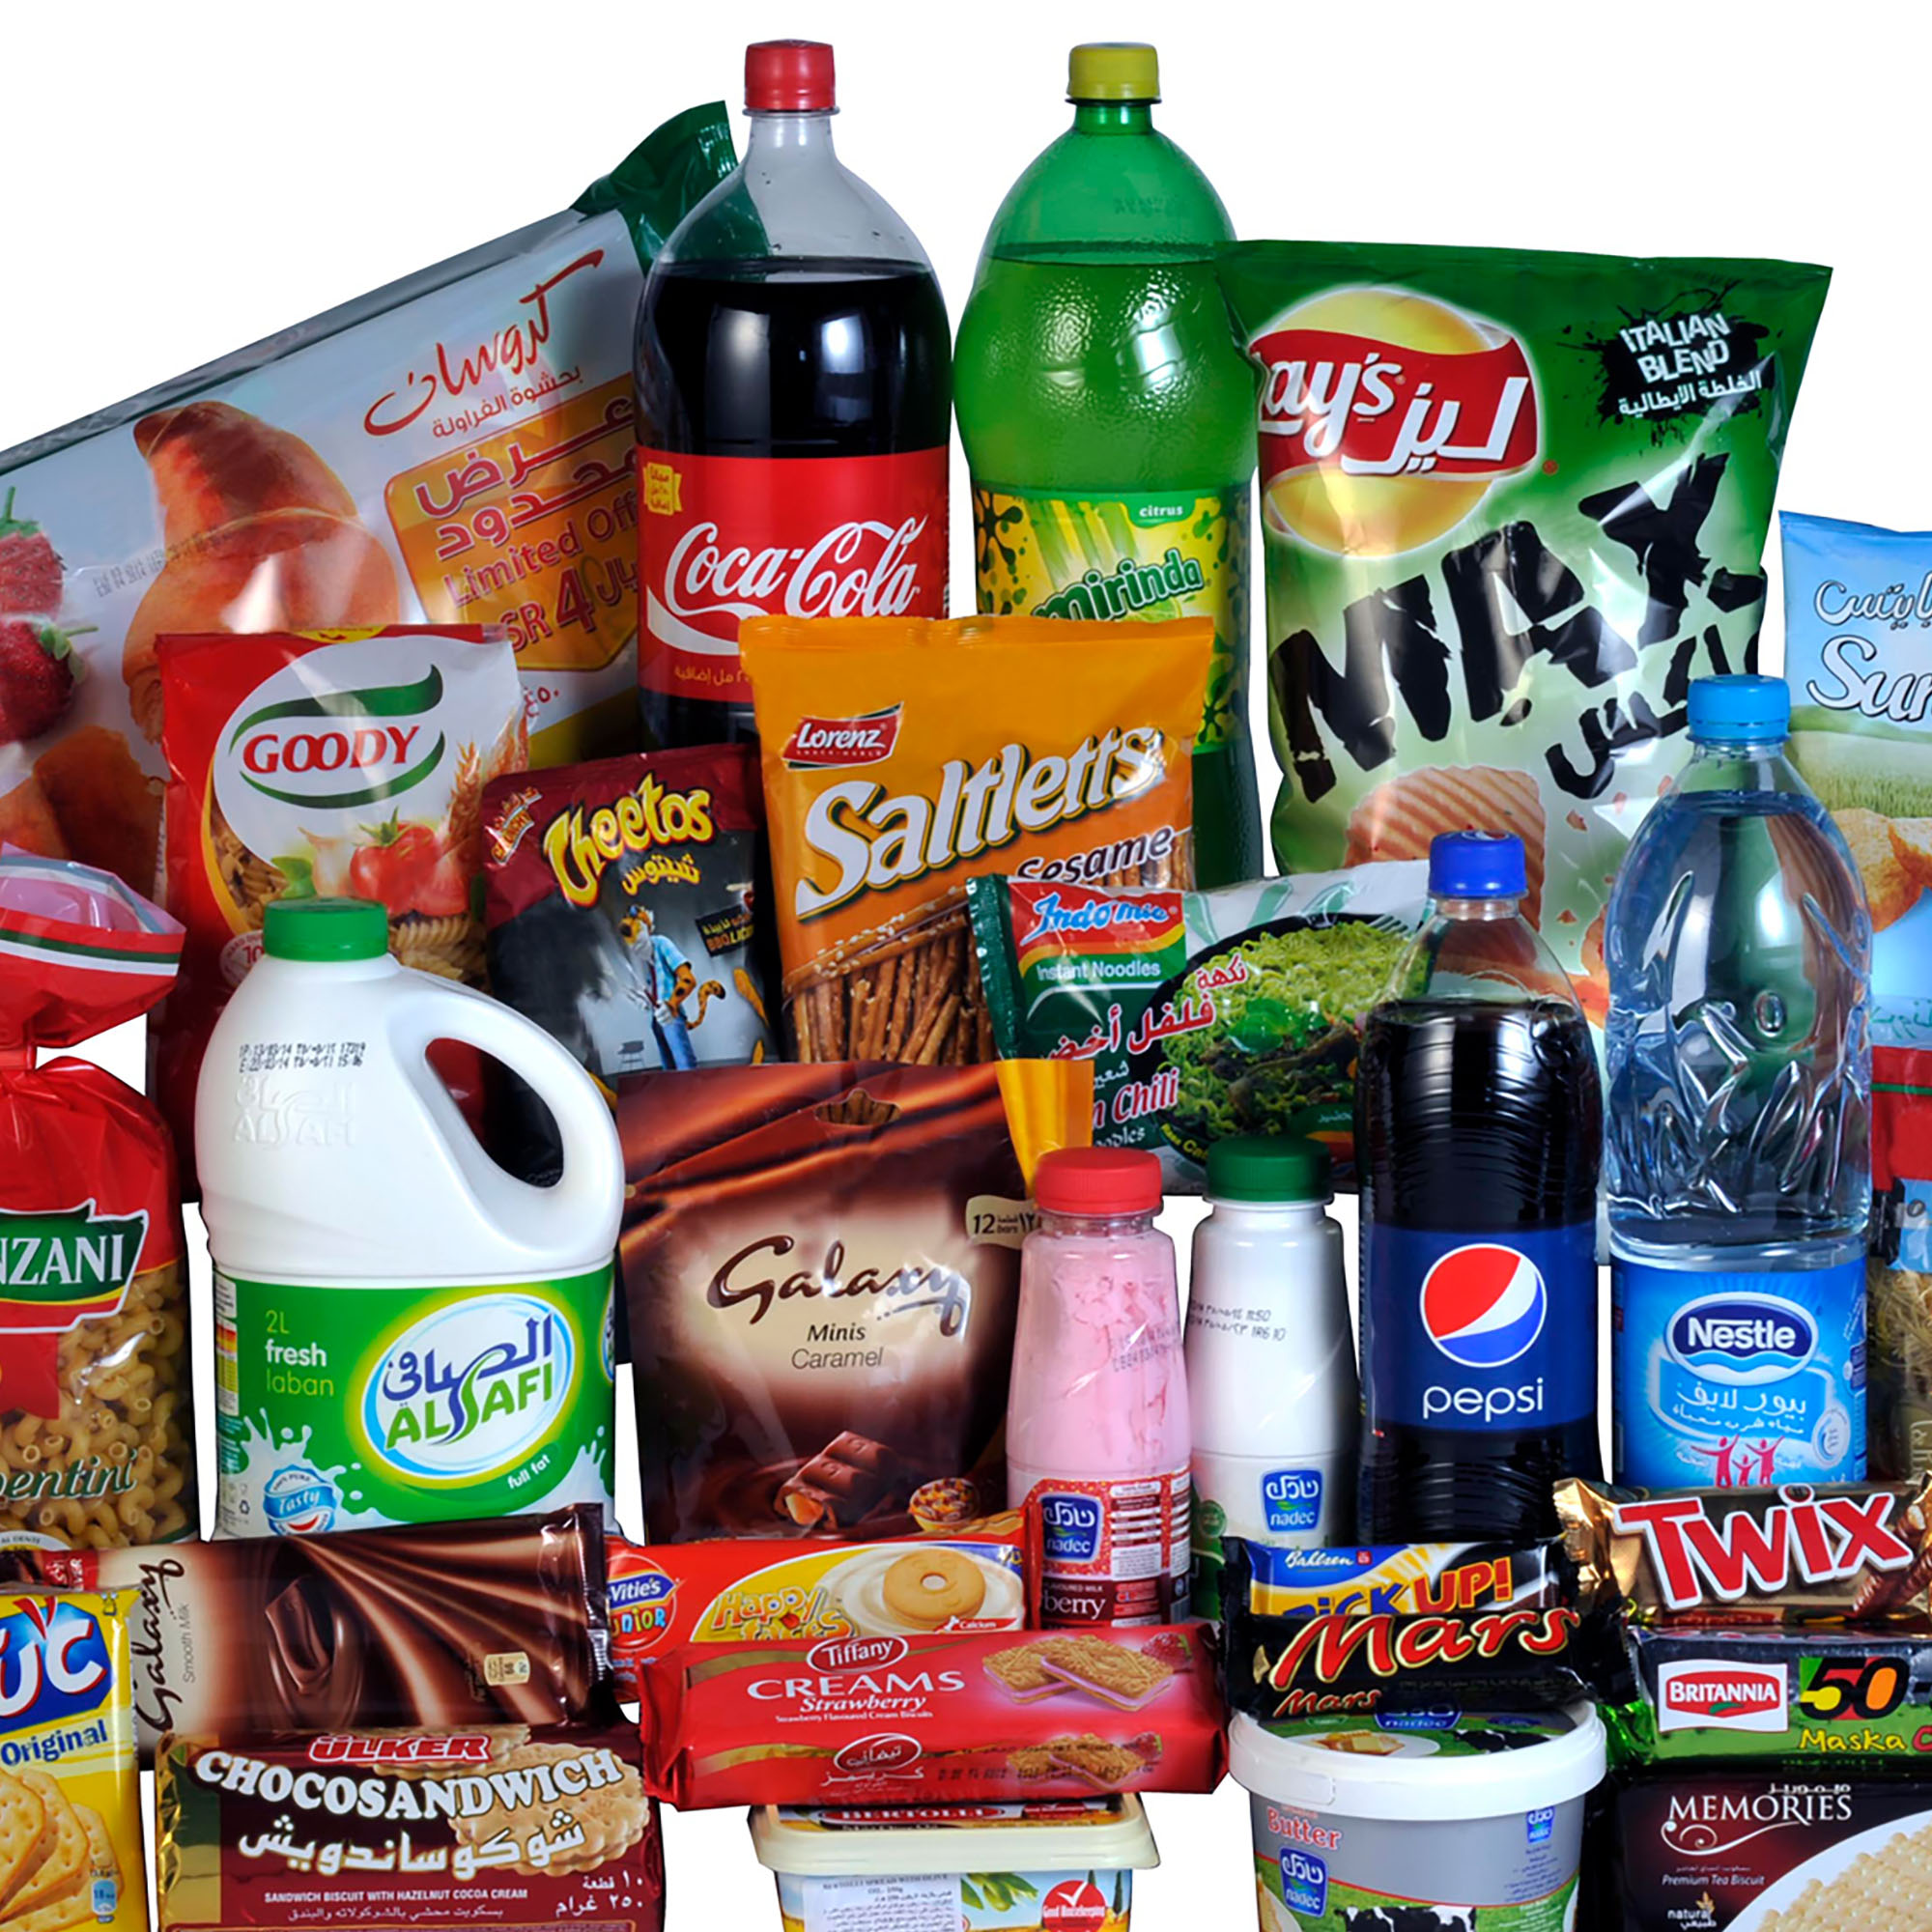 BOPP film for applications such as food packaging and labeling